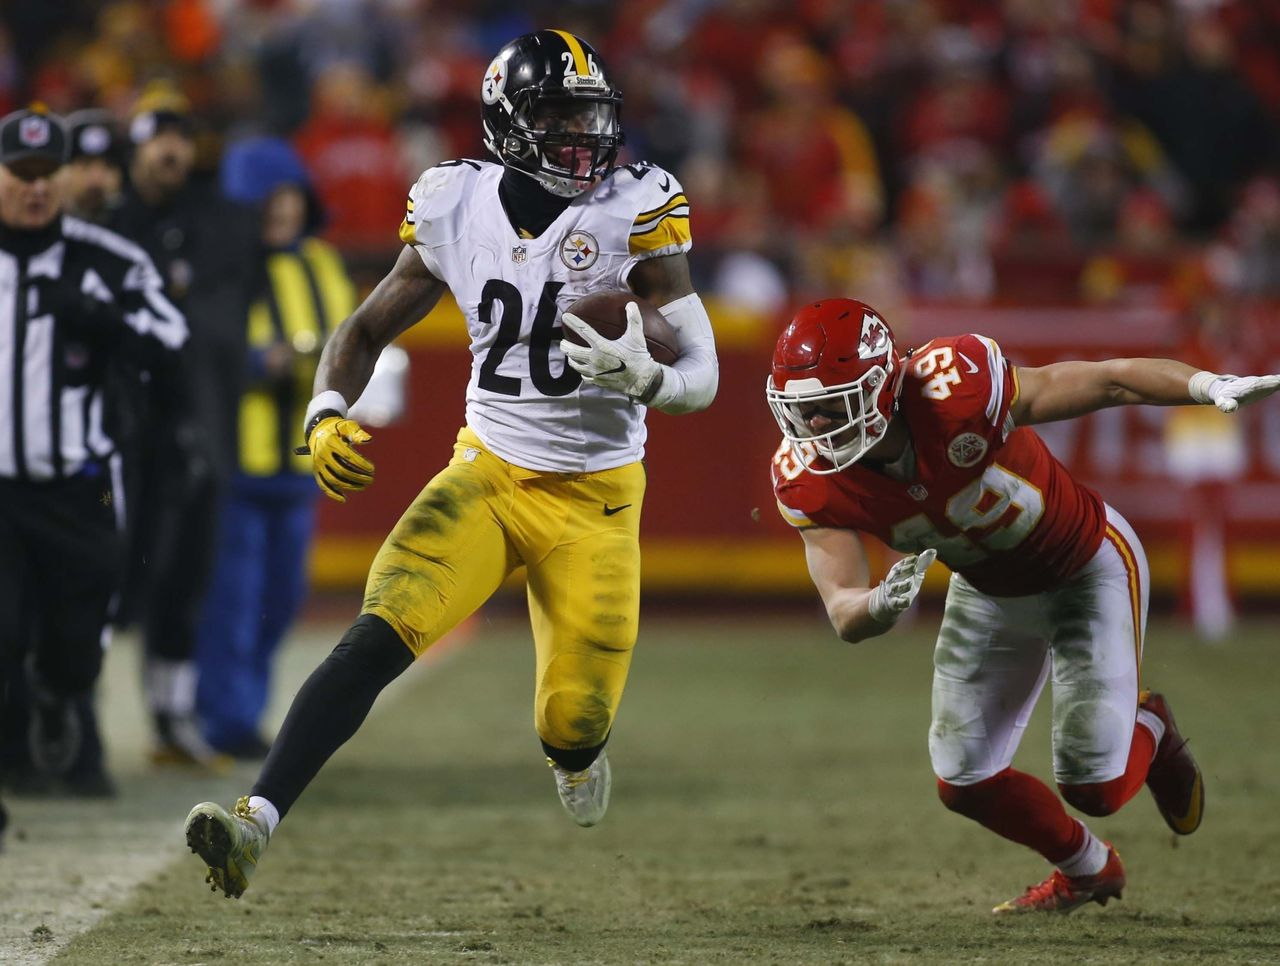 Cropped_2017-01-16t033039z_1210350296_nocid_rtrmadp_3_nfl-afc-divisional-pittsburgh-steelers-at-kansas-city-chiefs